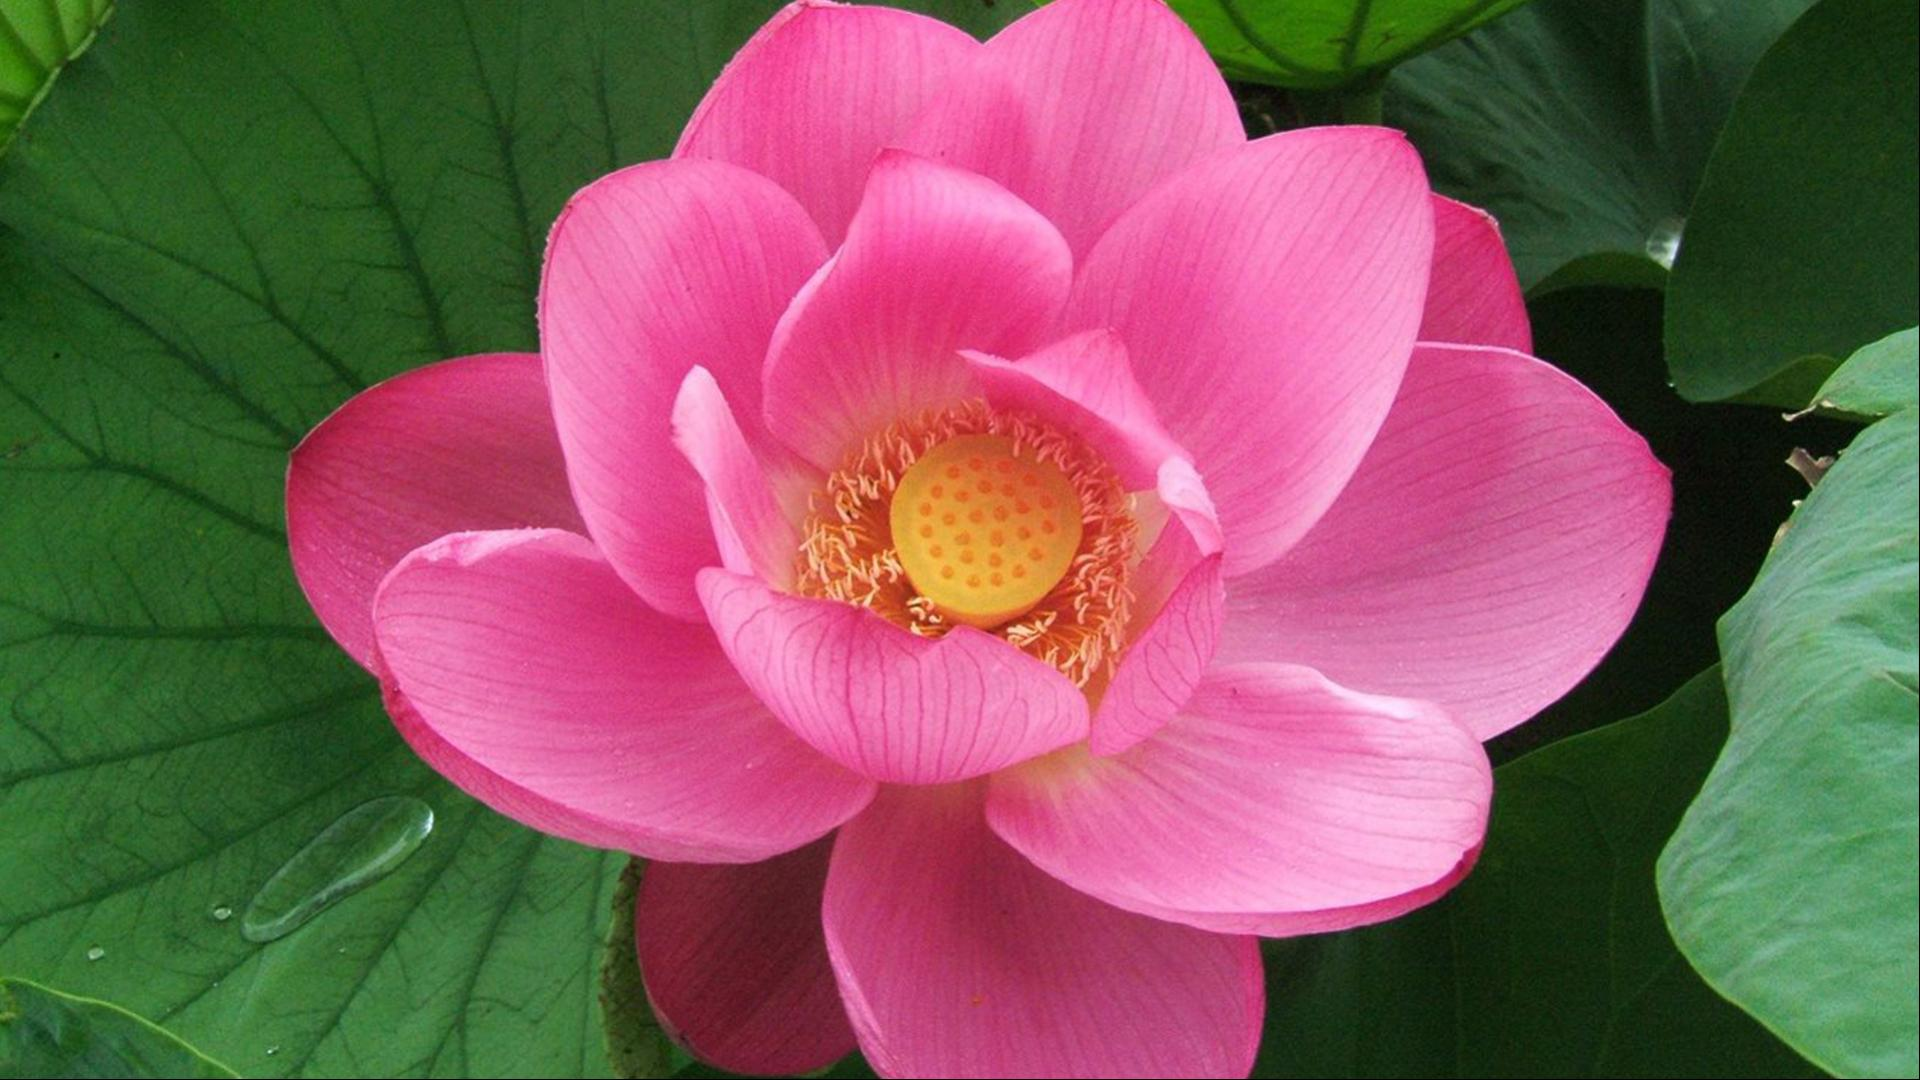 Hd close up picture of pink lotus flower for desktop background hd available downloads izmirmasajfo